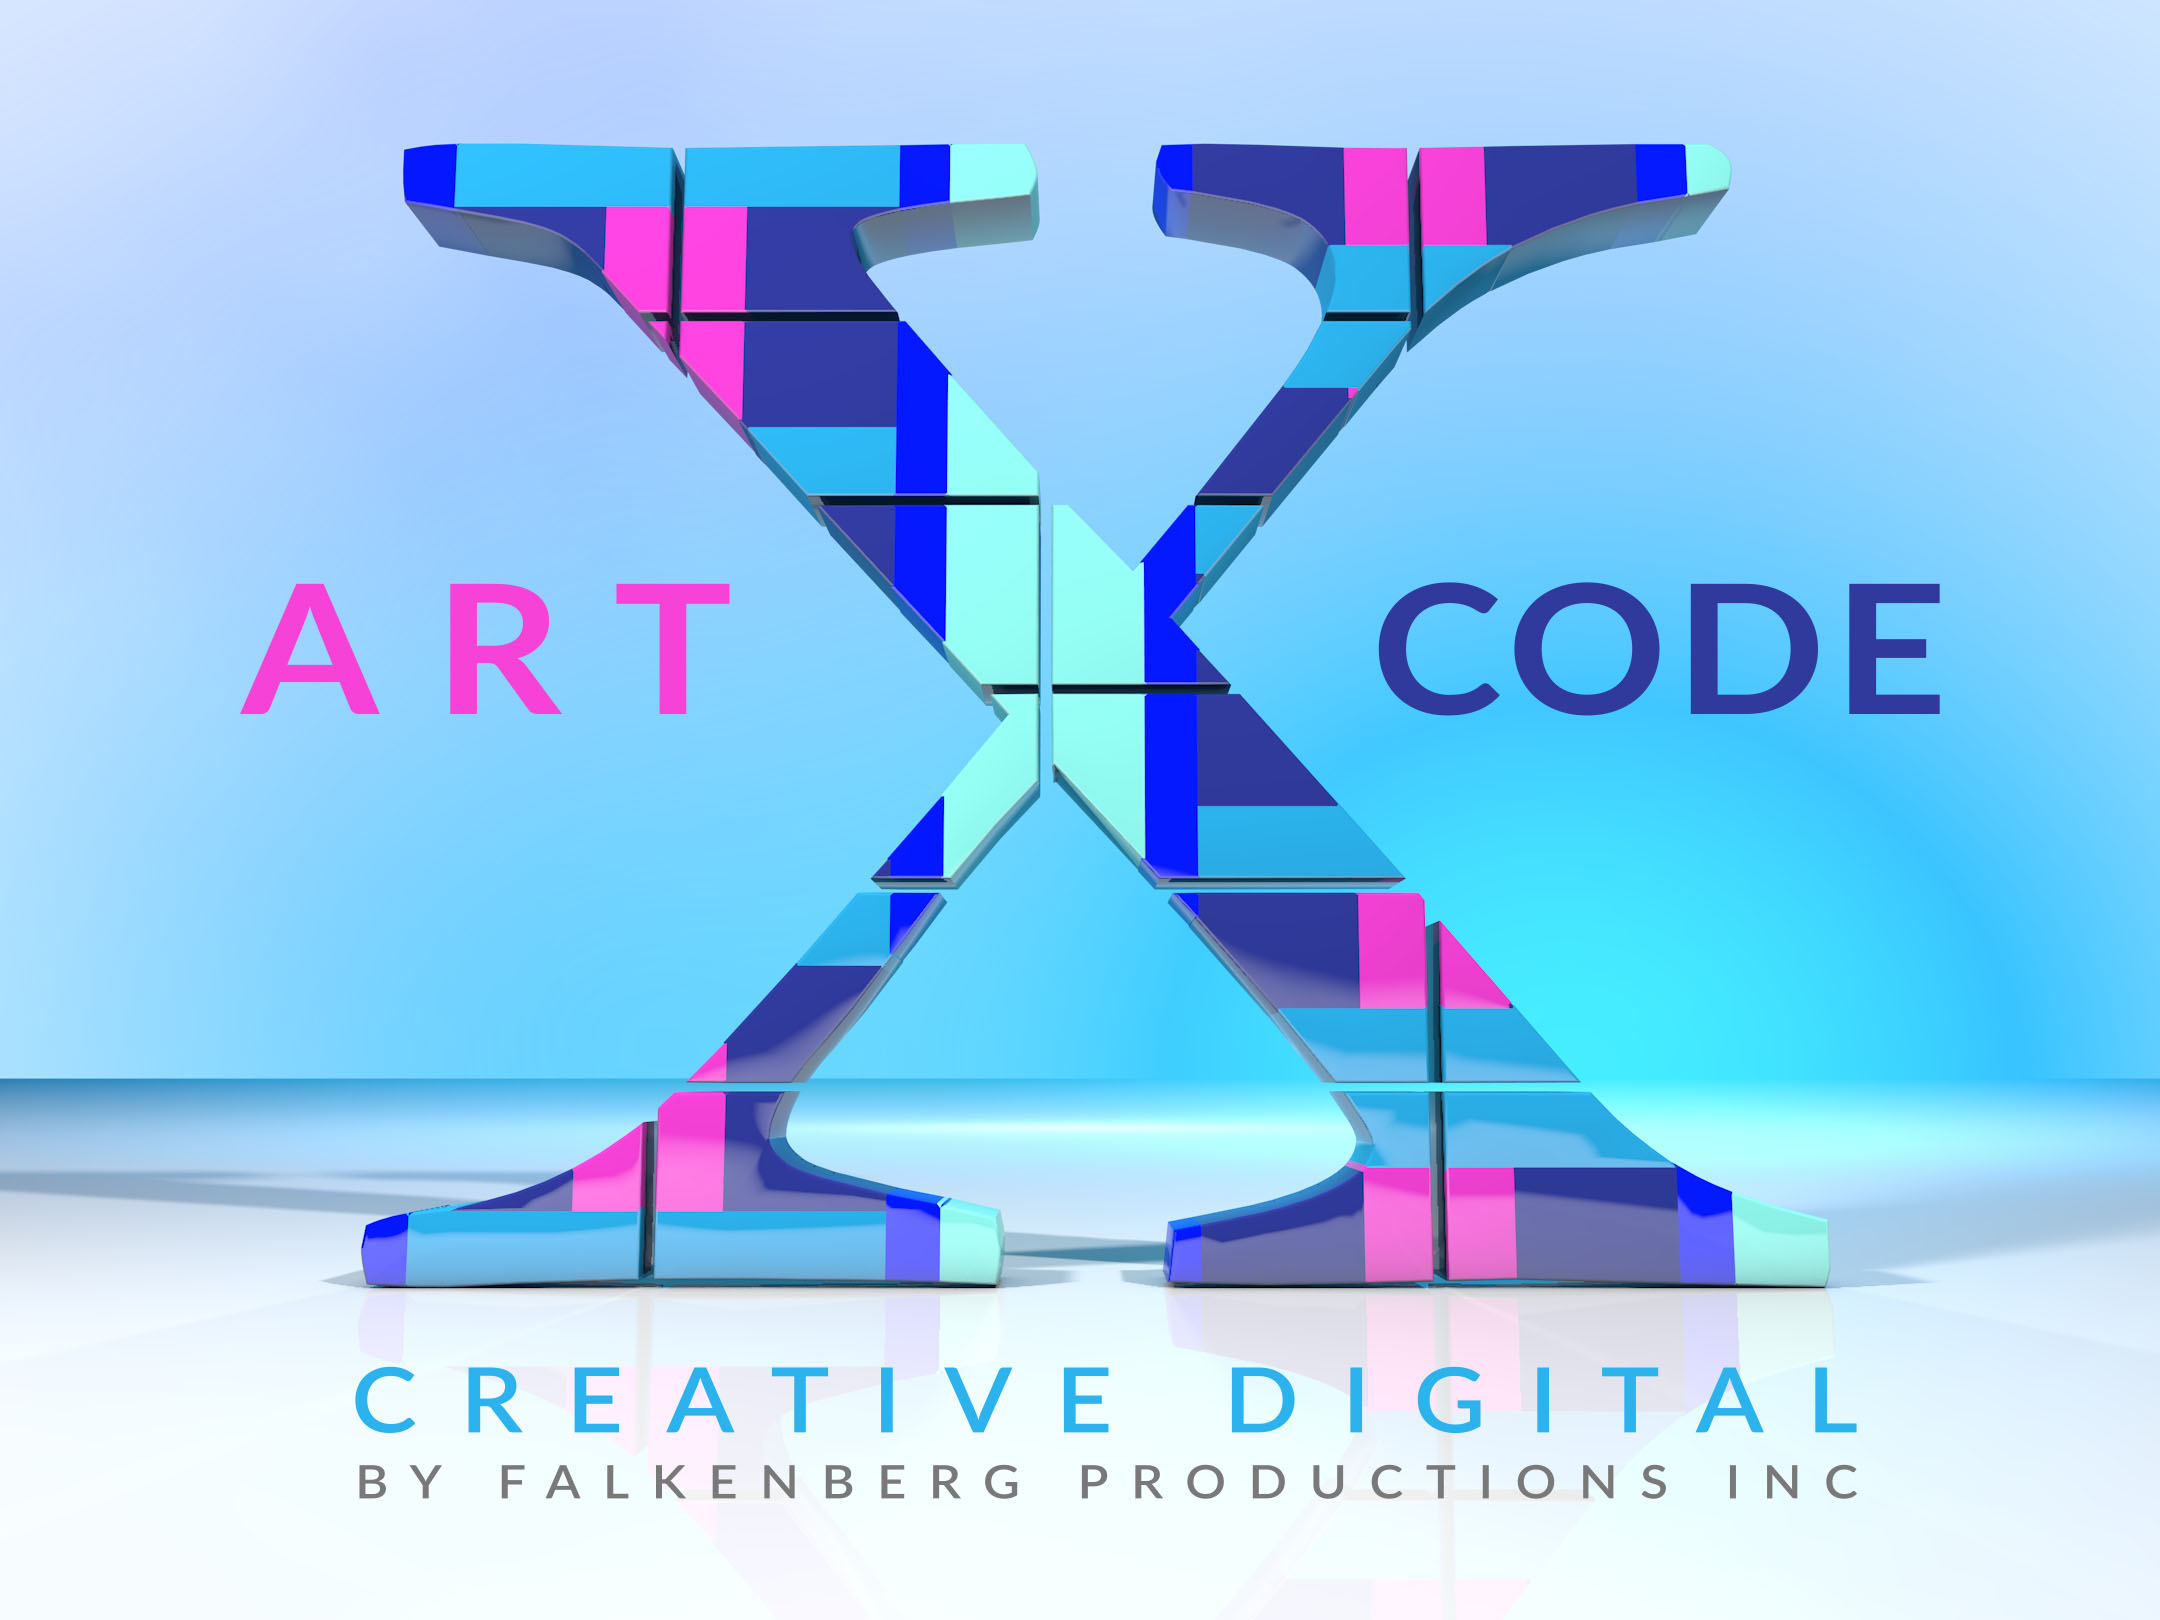 Art x Code Graphic Design in Social Media Marketing